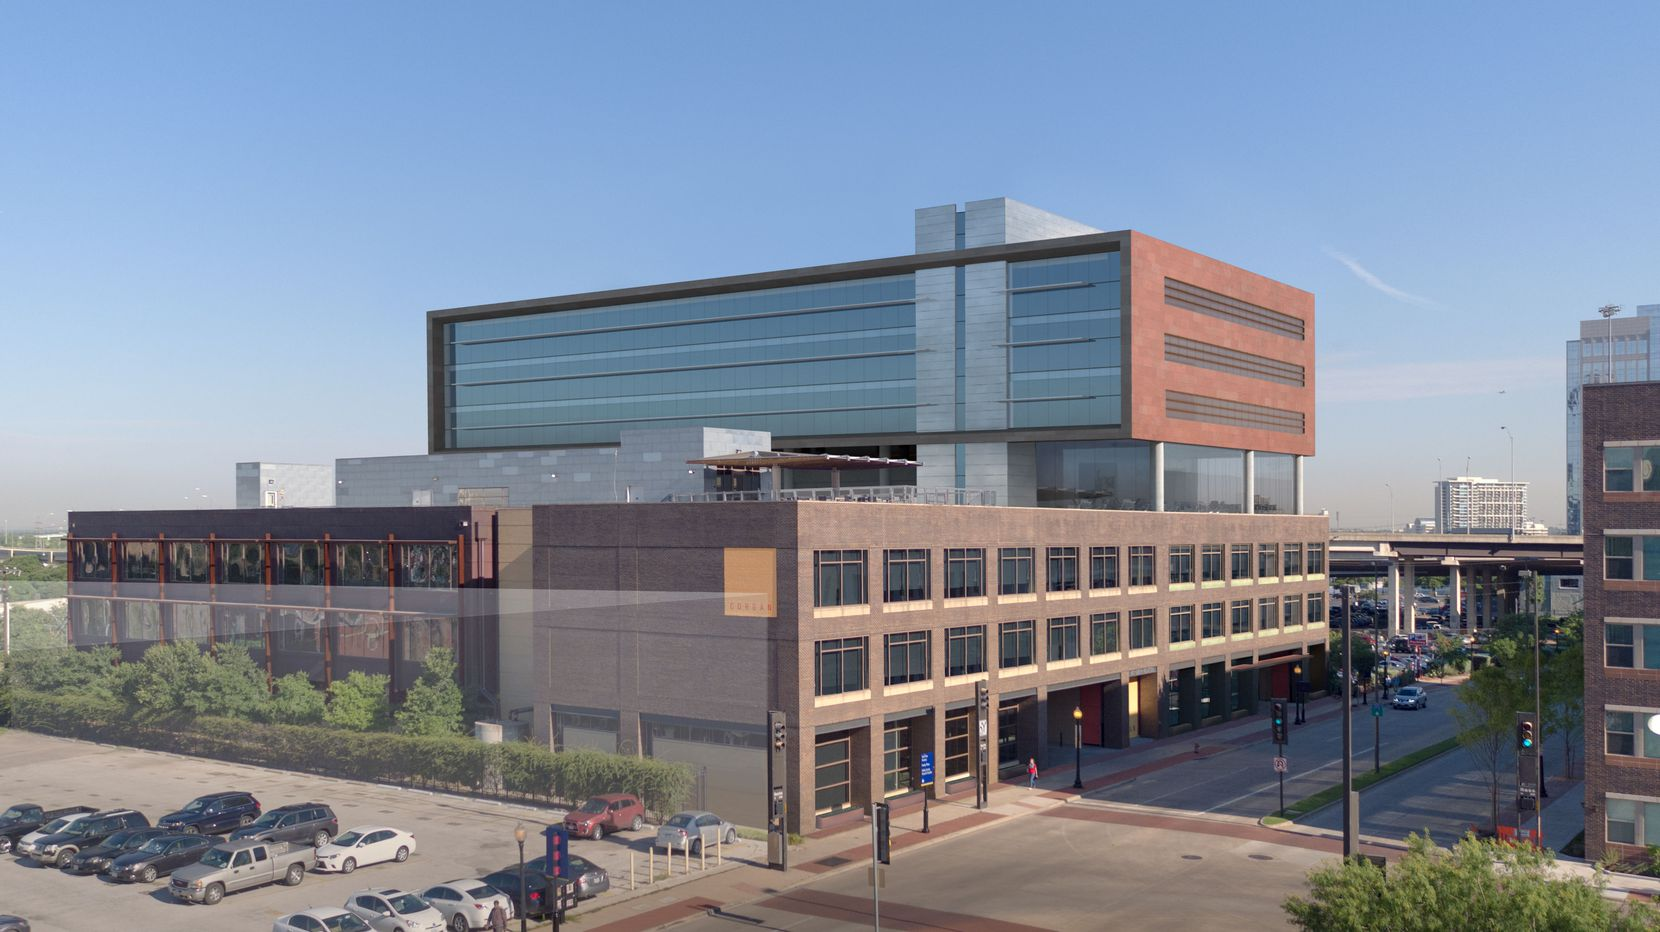 The 7-story Luminary office building is being constructed by Crescent Real Estate.